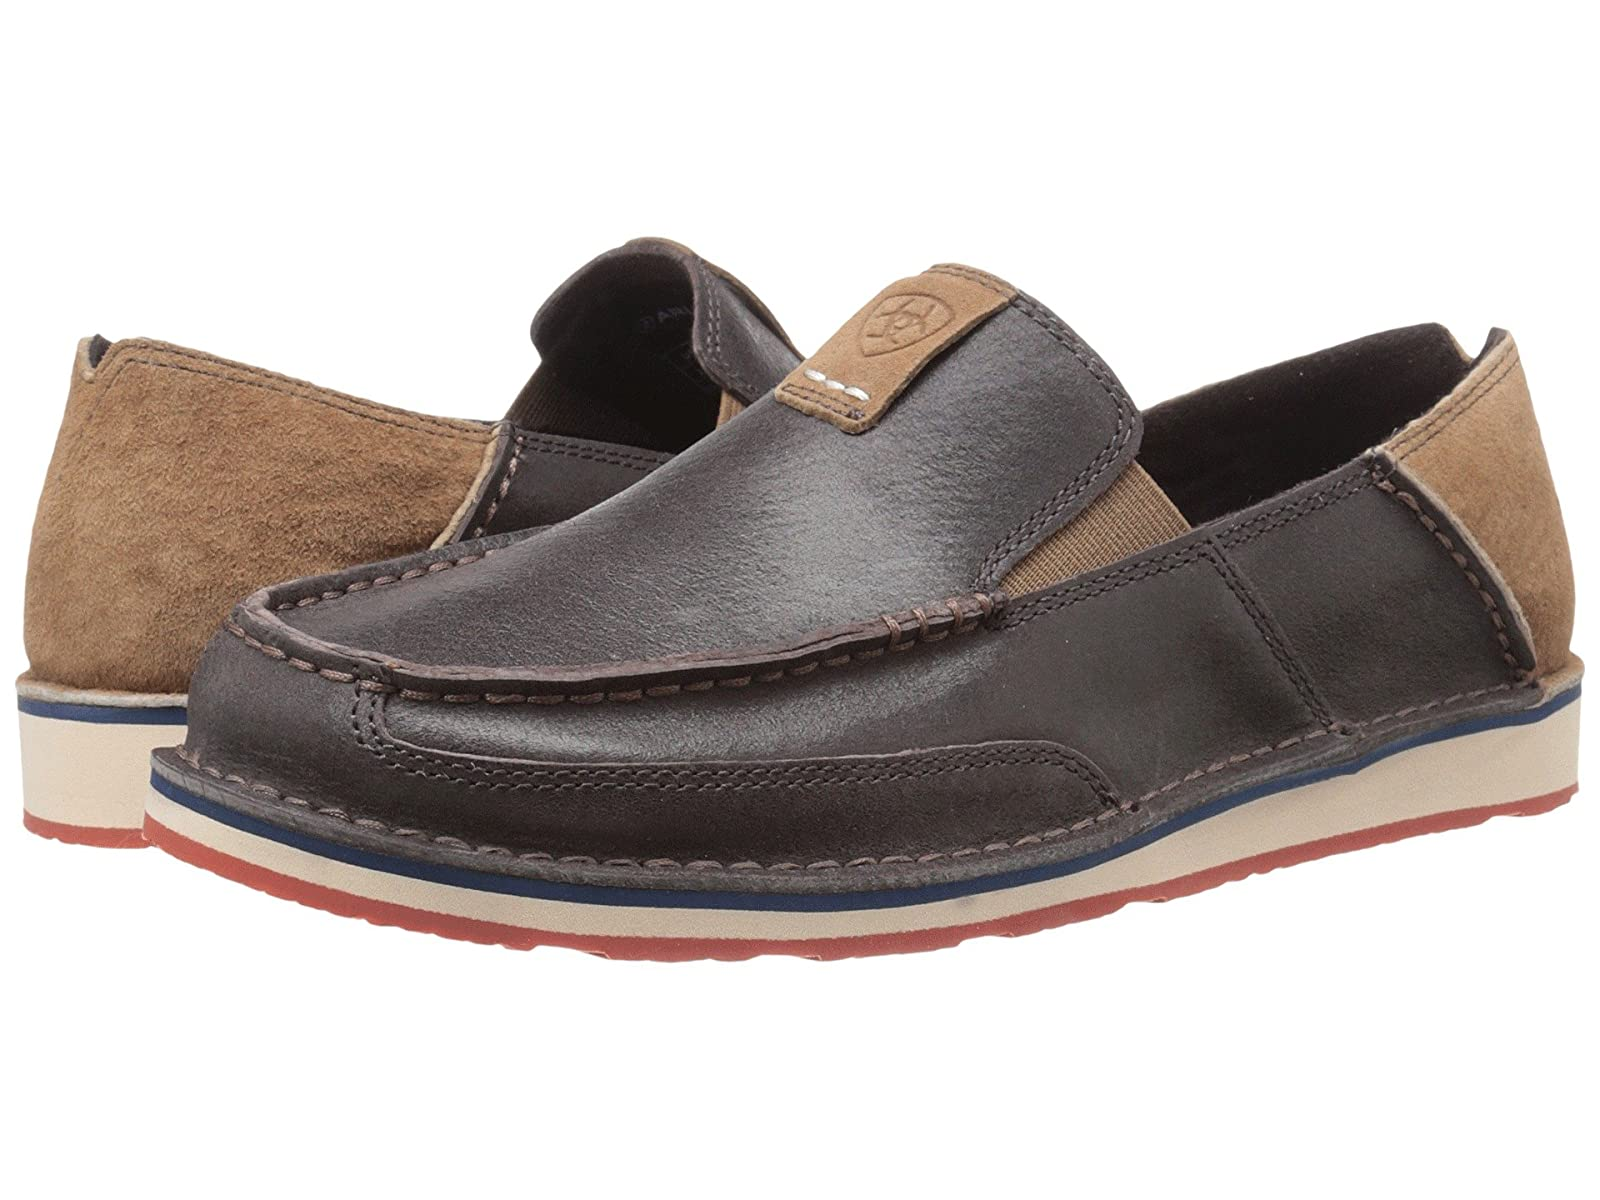 Ariat CruiserAtmospheric grades have affordable shoes